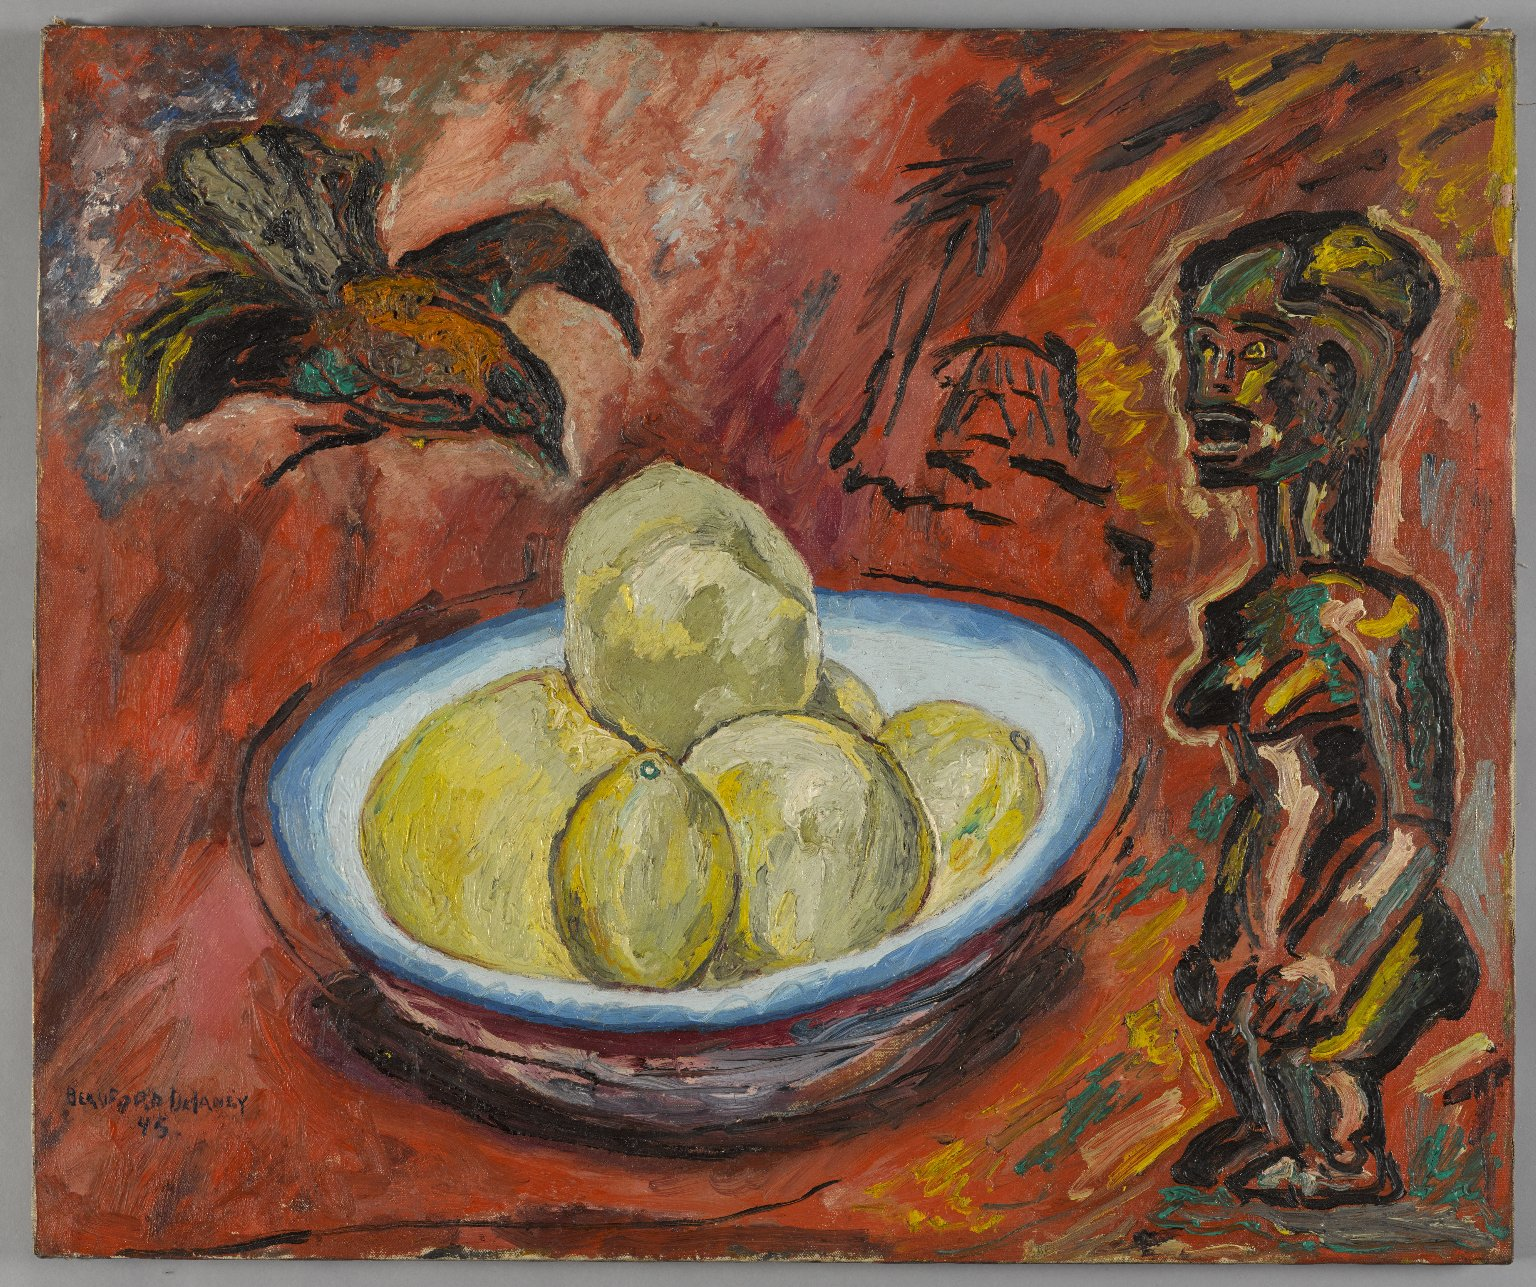 2014.73_PS9 - beauford delaney - fang, crow, and fruit